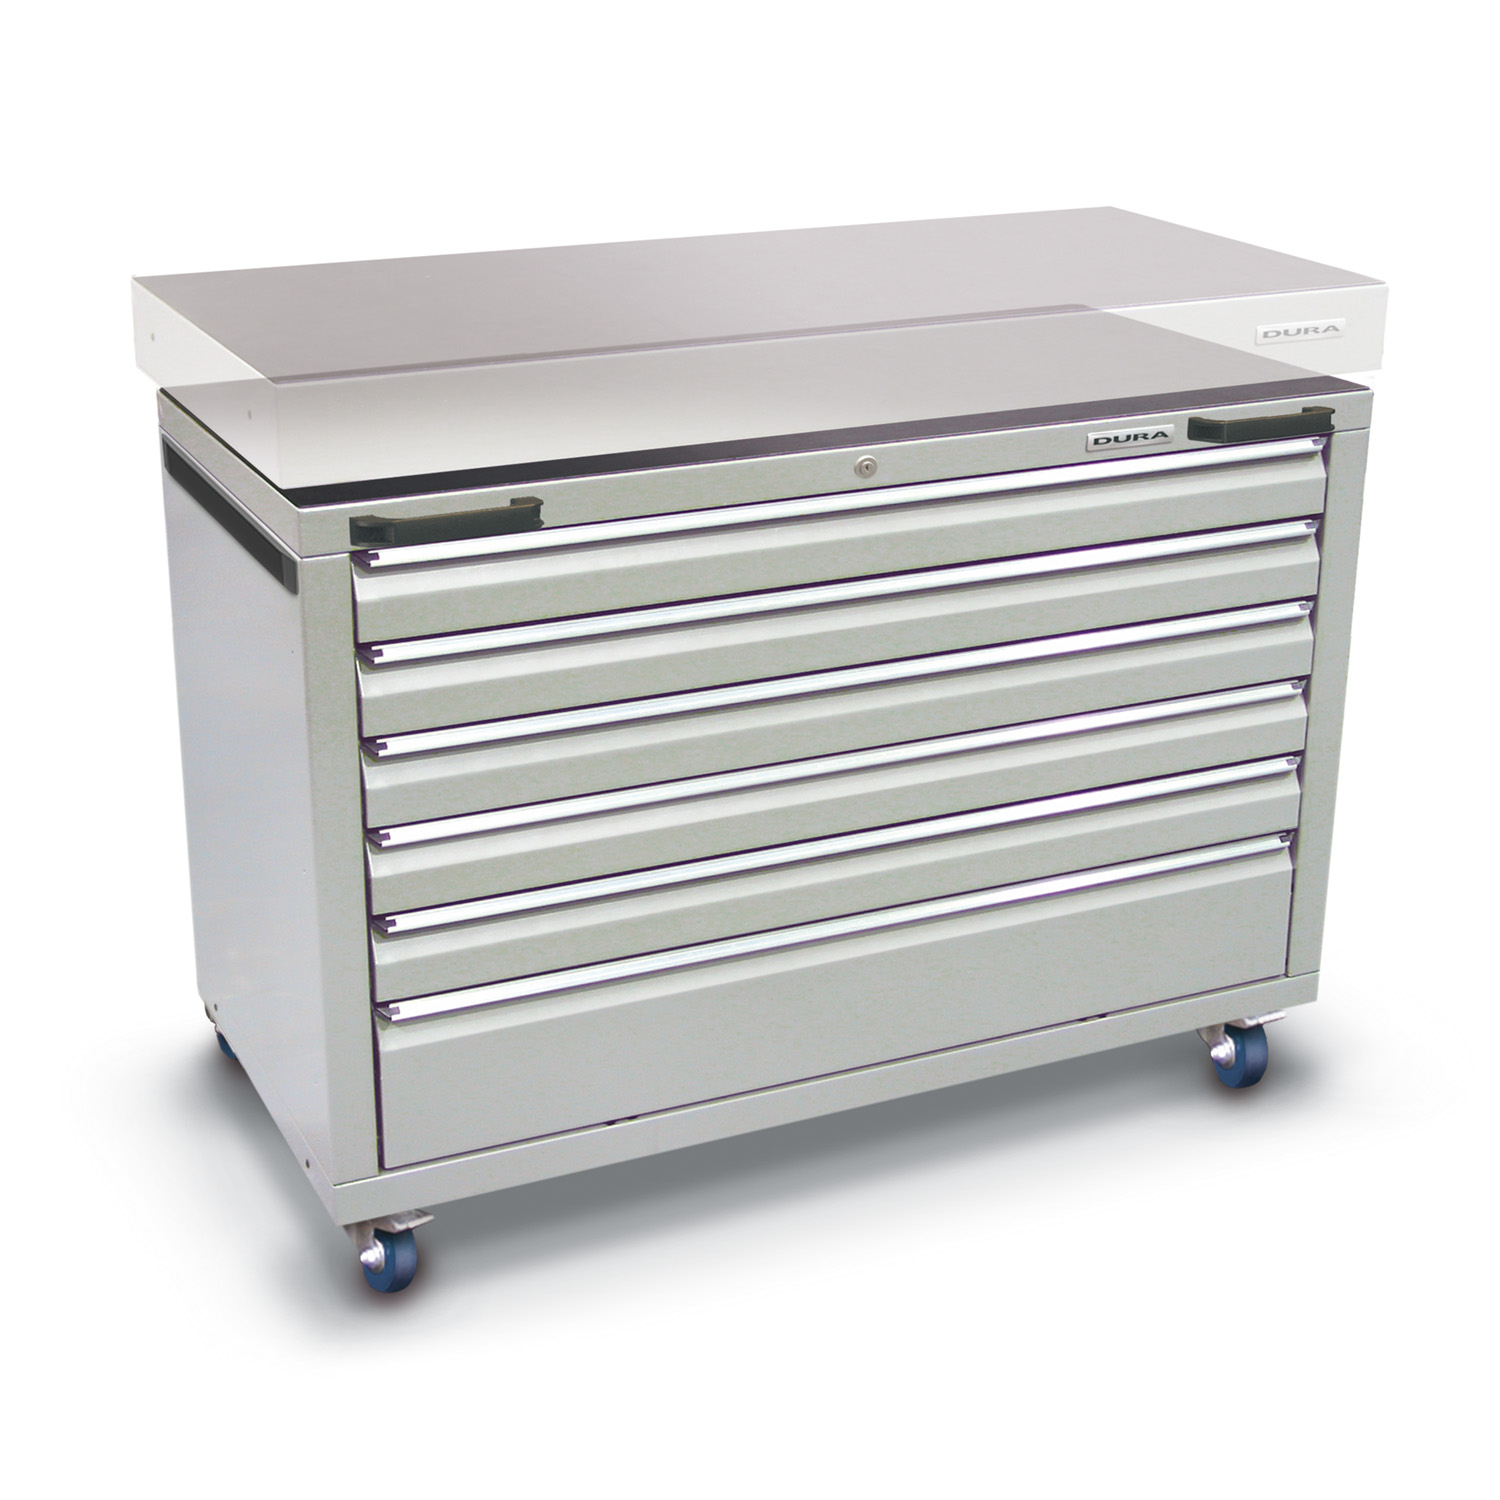 1160mm Under-bench cabinet (6 drawers)